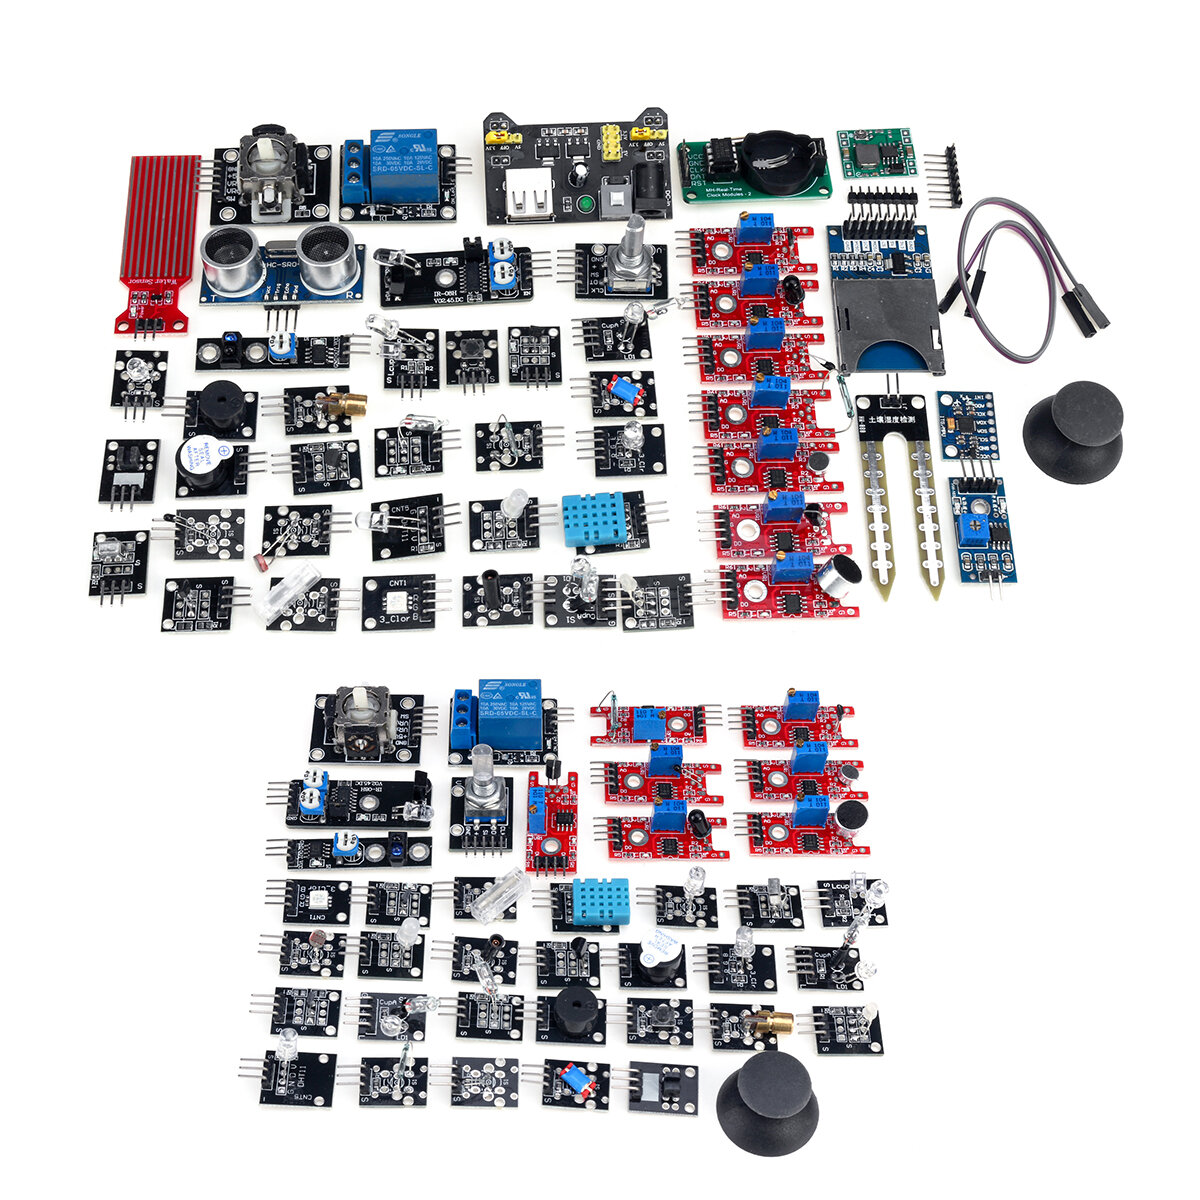 Sensor 37 In 1 Sensor Modul Kit Für Arduino Raspberry Pi MCU Education